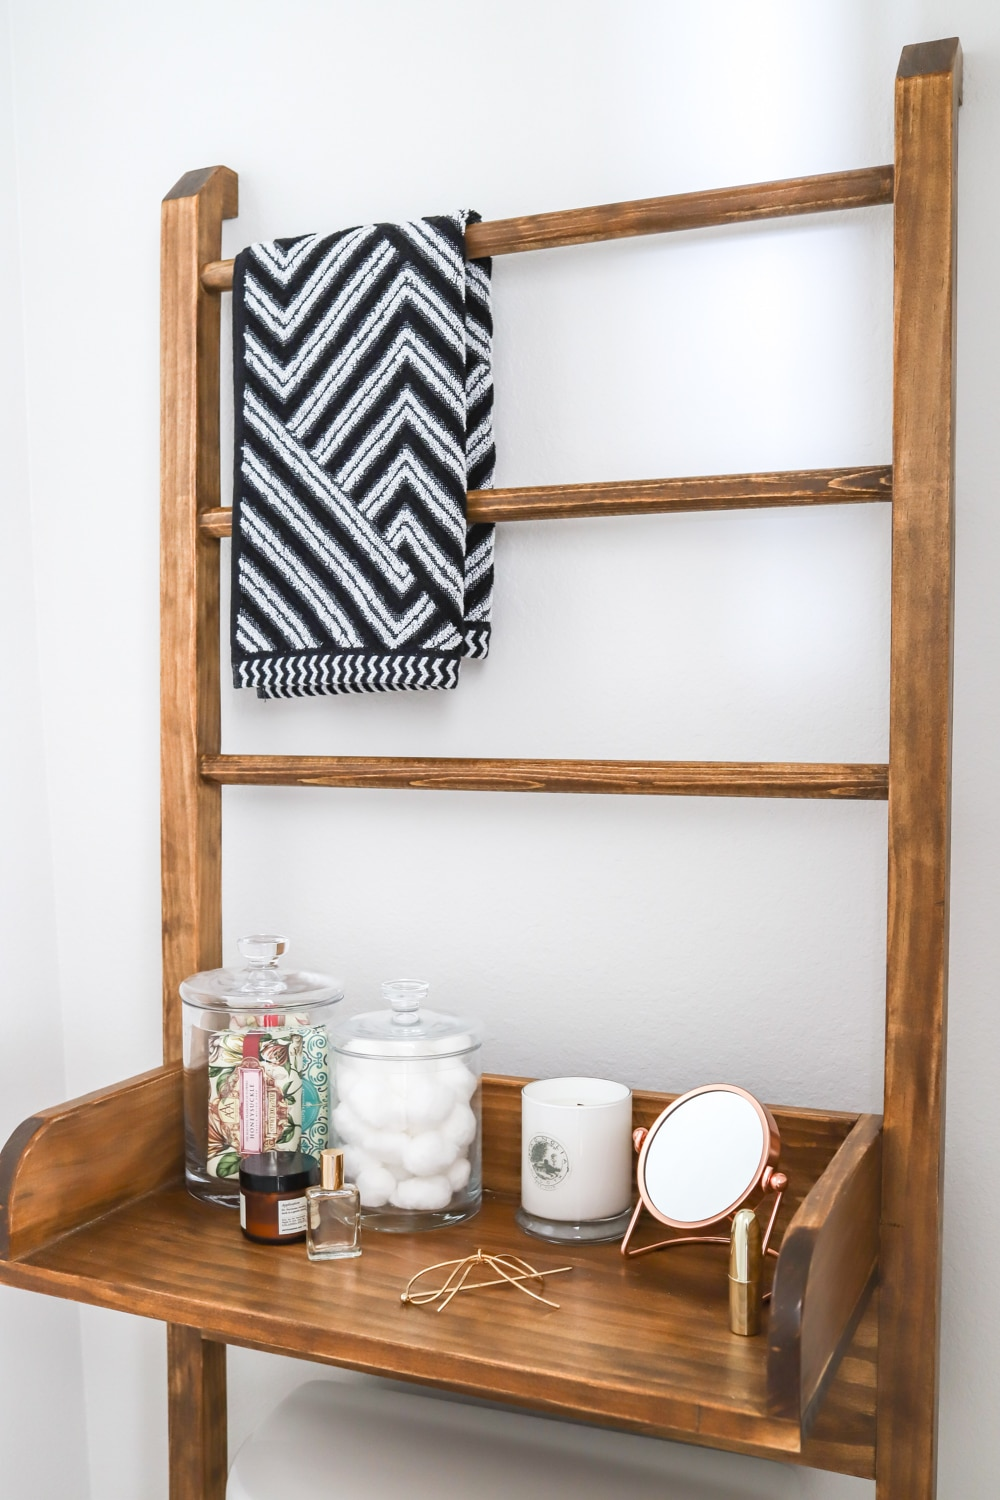 How to make a DIY leaning ladder bathroom shelf